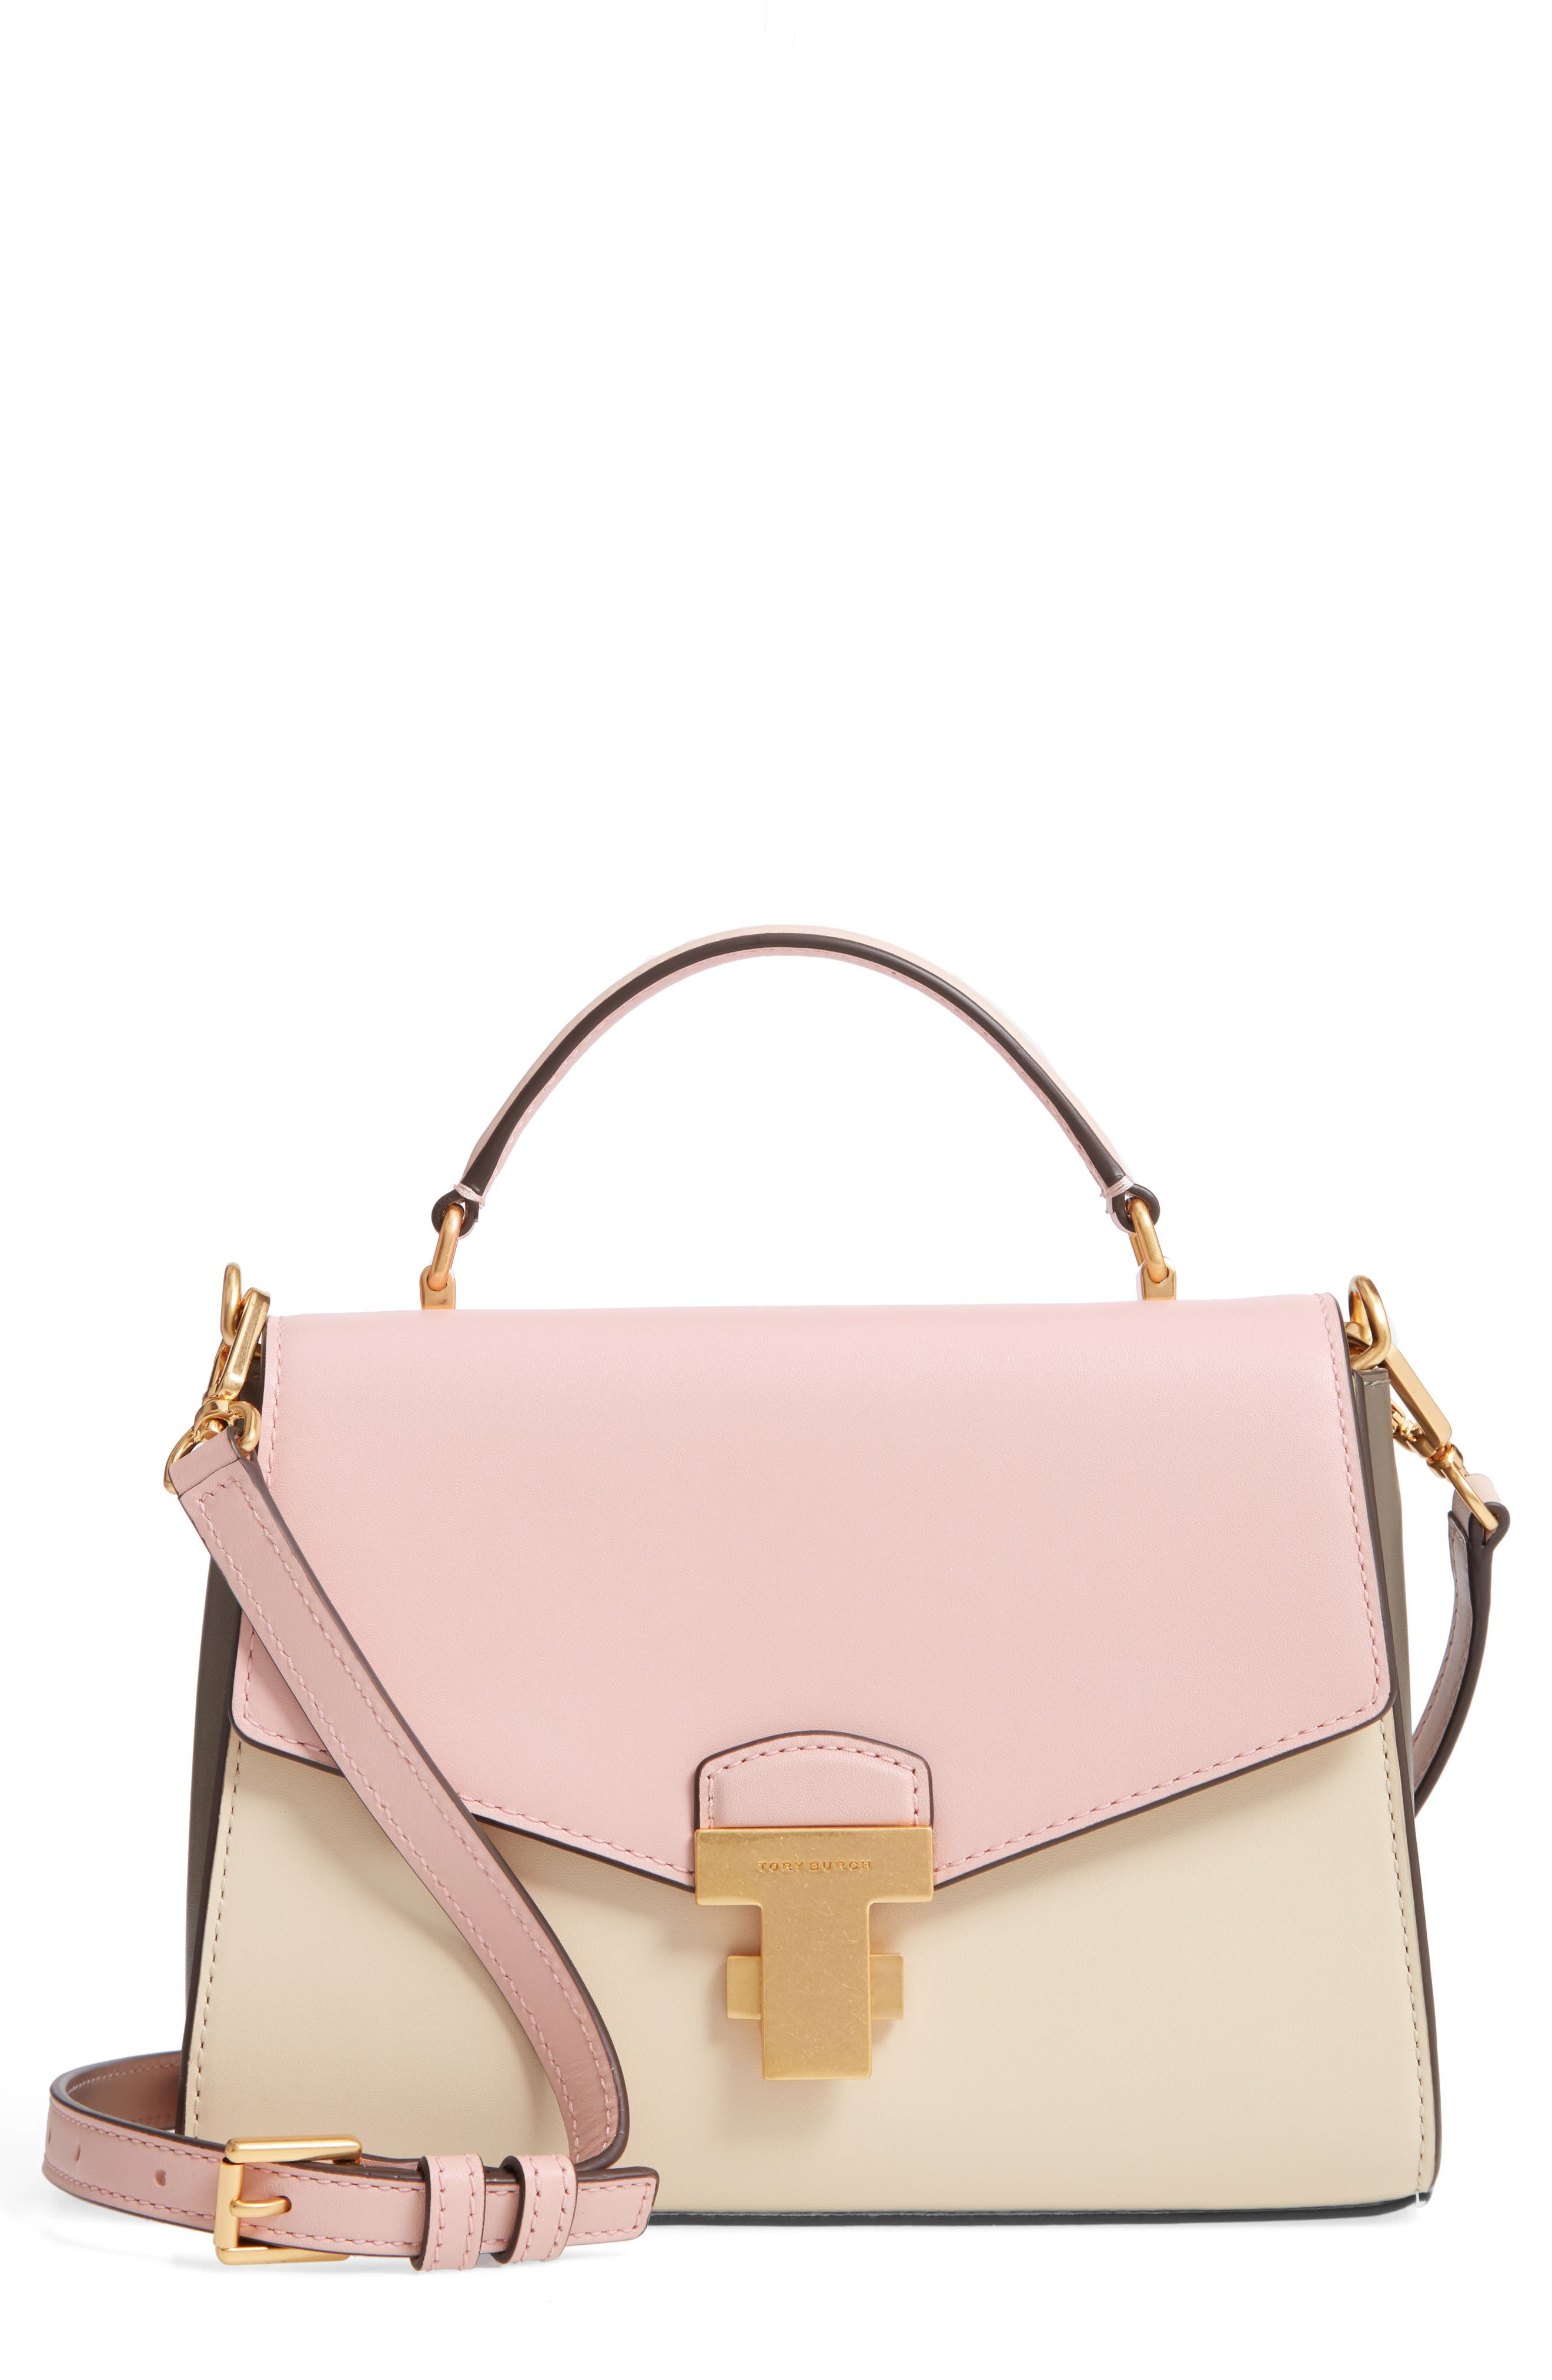 TORY BURCH,                             Small Juliette Colorblock Leather Satchel,                             Main thumbnail 1, color,                             SHELL PINK/ CREAM/ MUSHROOM